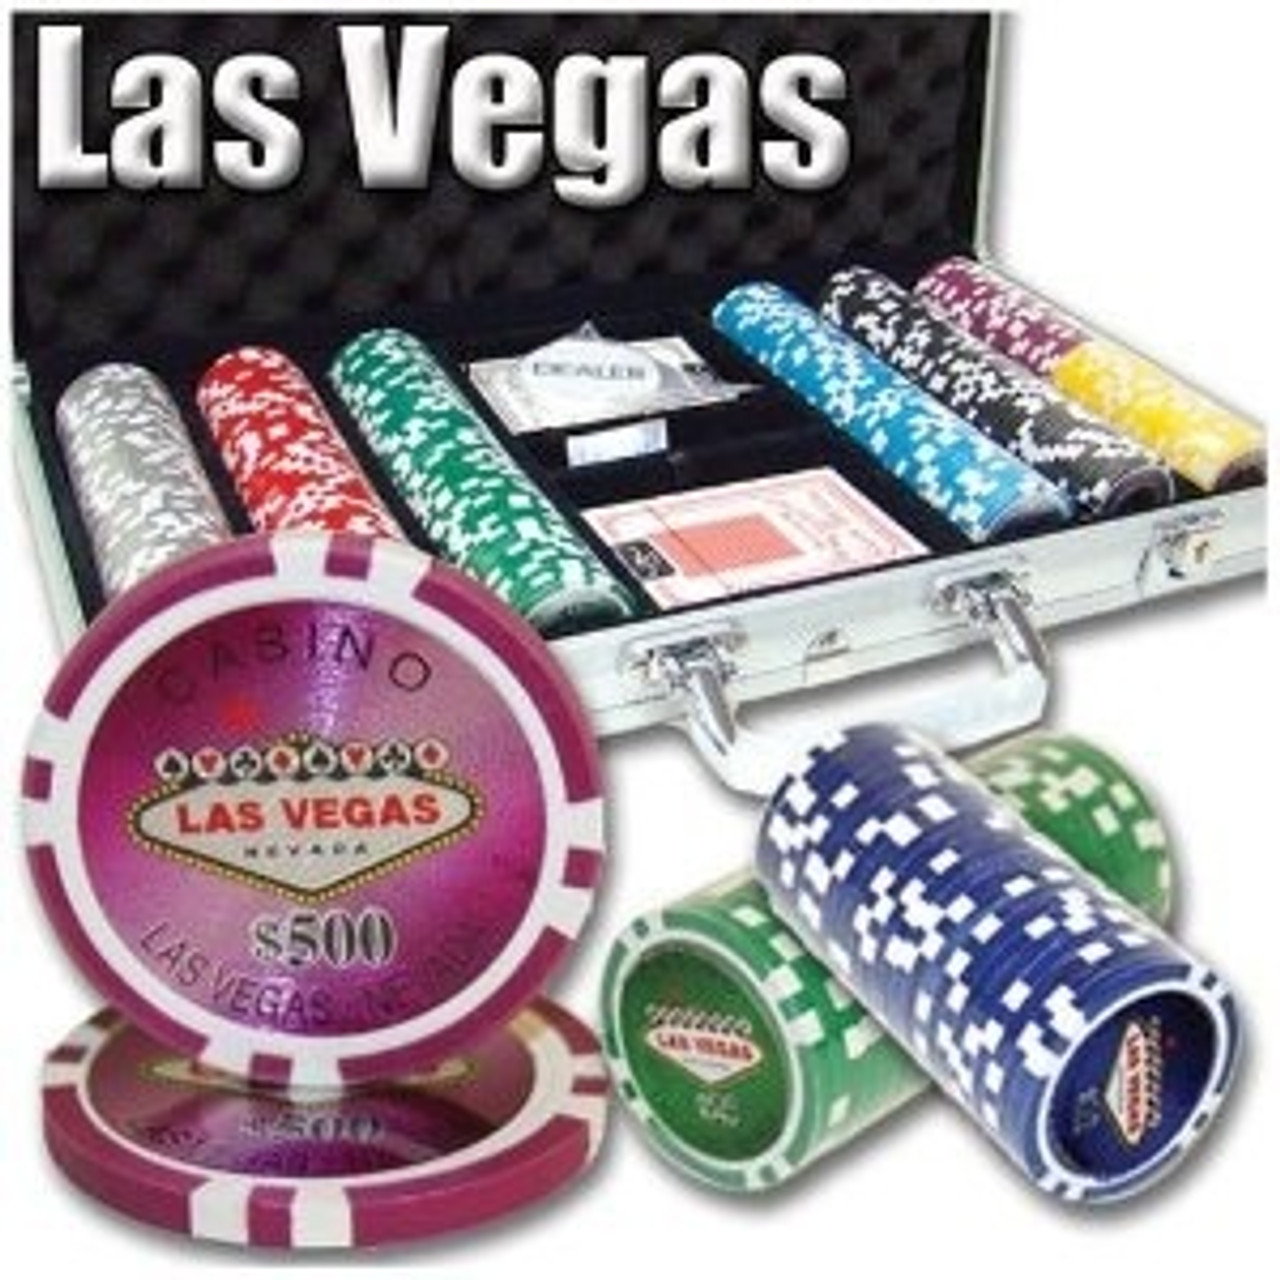 Poker Chip Set Las Vegas 300pc 11.5g with Carry Case & FREE OFFER